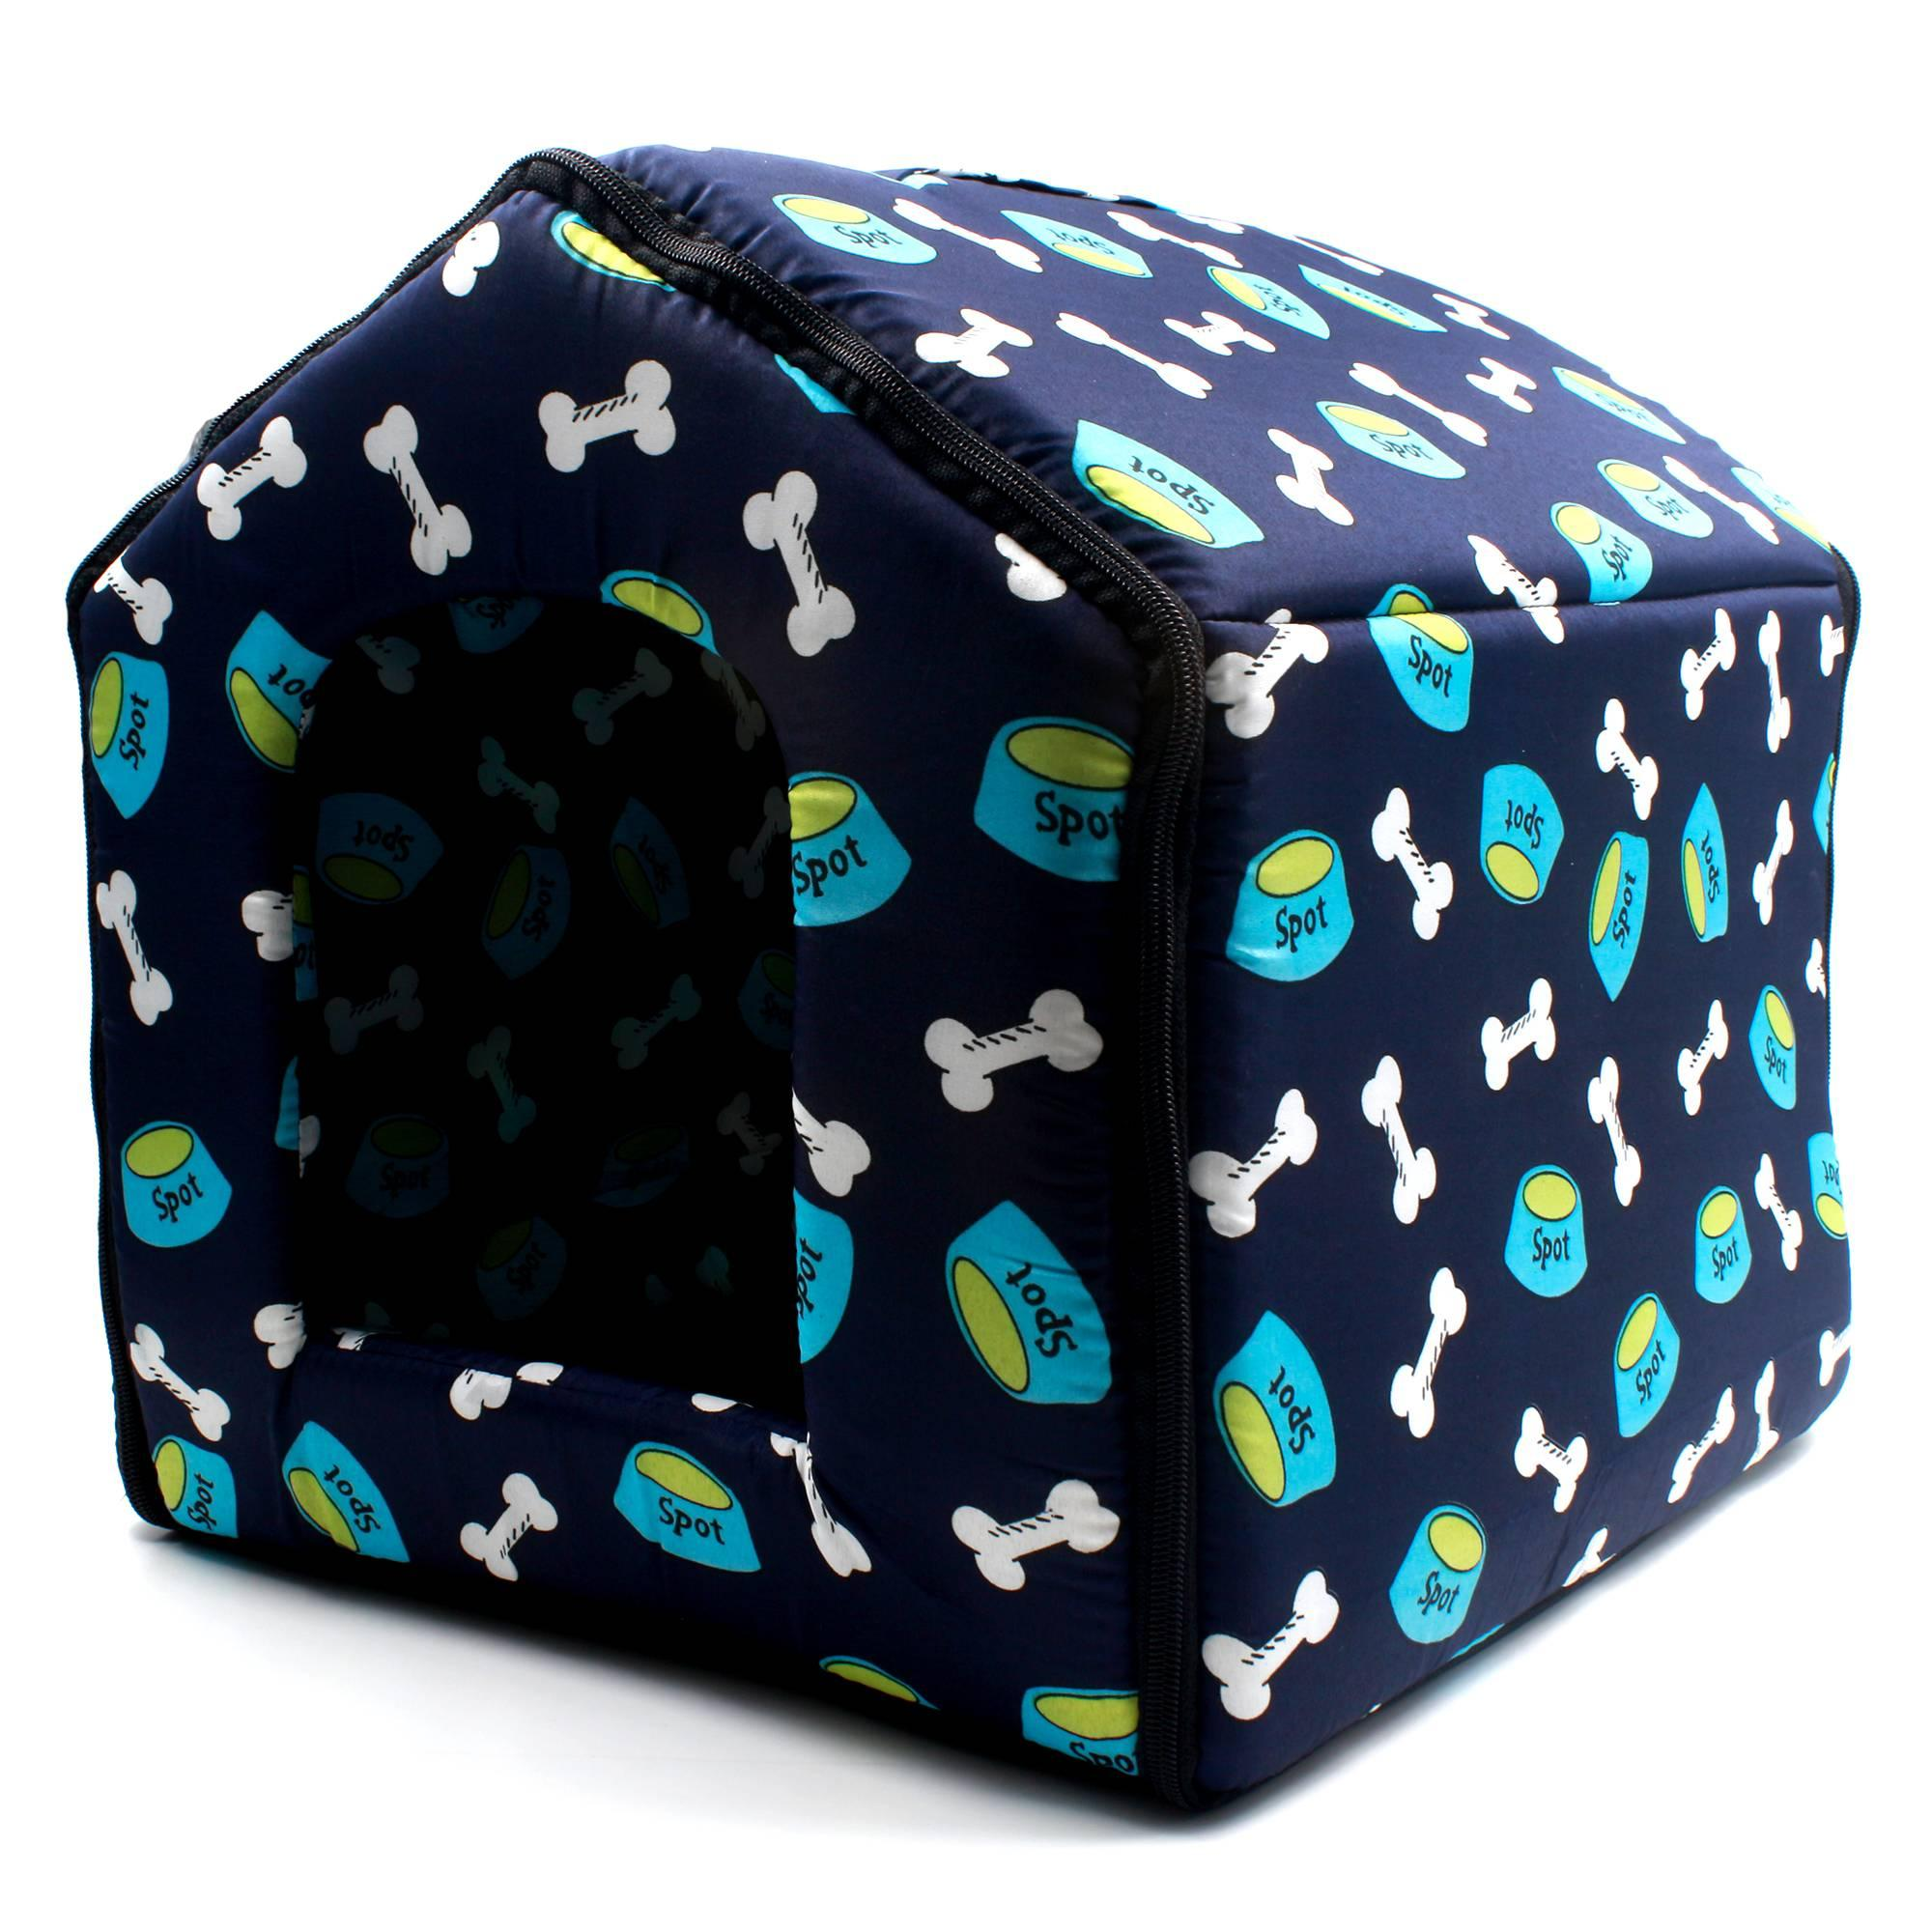 Digisoria Bowls And Bones Pattern Pet Dog House (blue) By Digisoria.